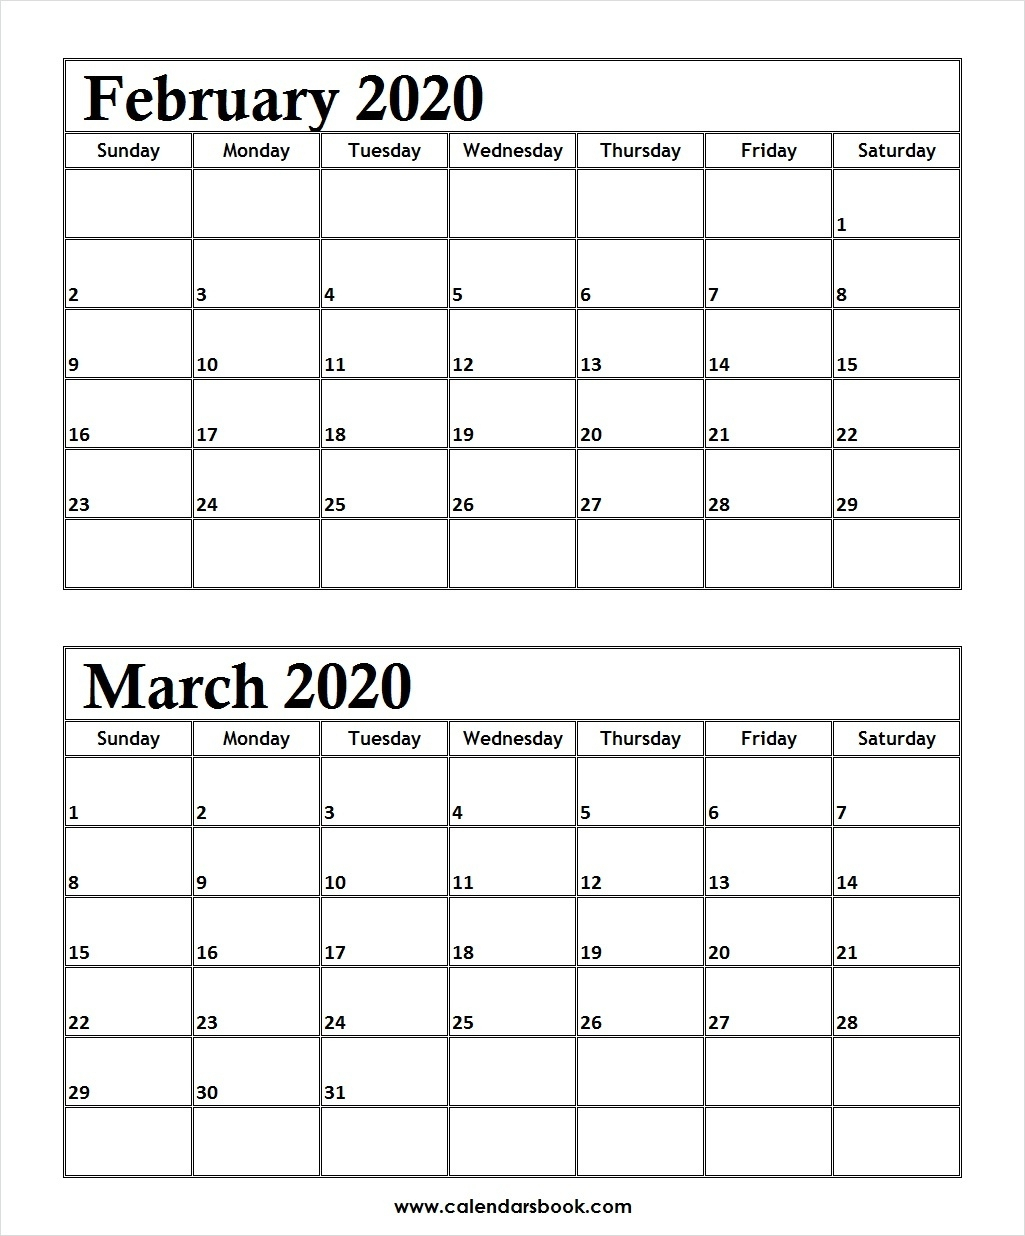 Feb And March 2020 Calendar  Yatay.horizonconsulting.co for 2020 Calendar February And March